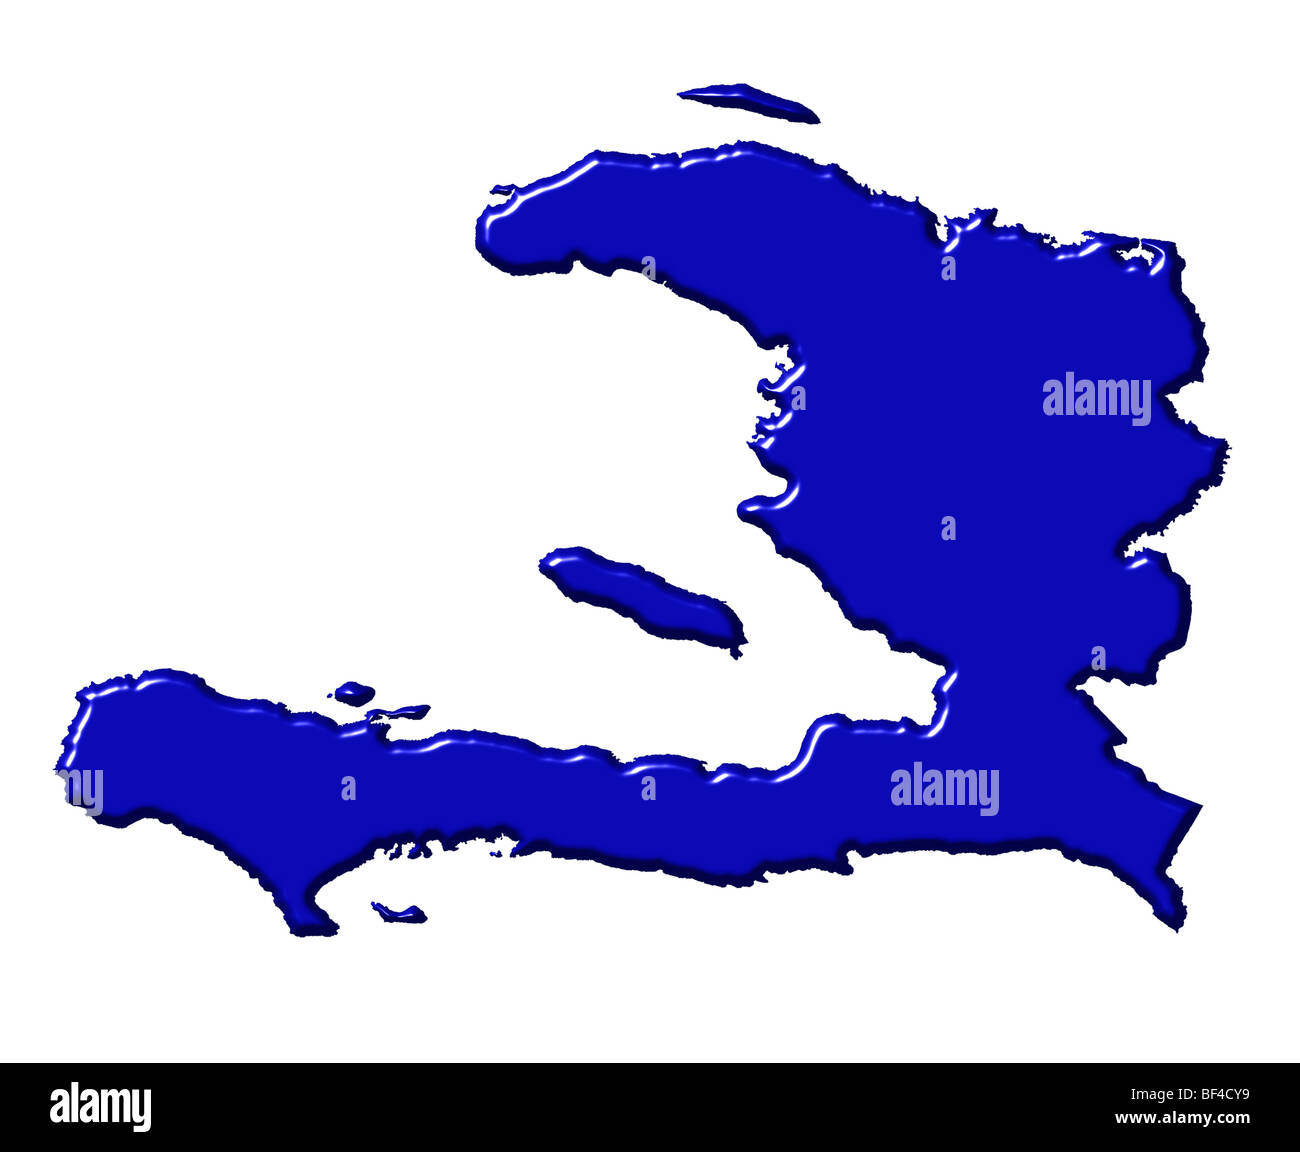 Haiti 3d map with national color stock photo 26528189 alamy haiti 3d map with national color gumiabroncs Image collections